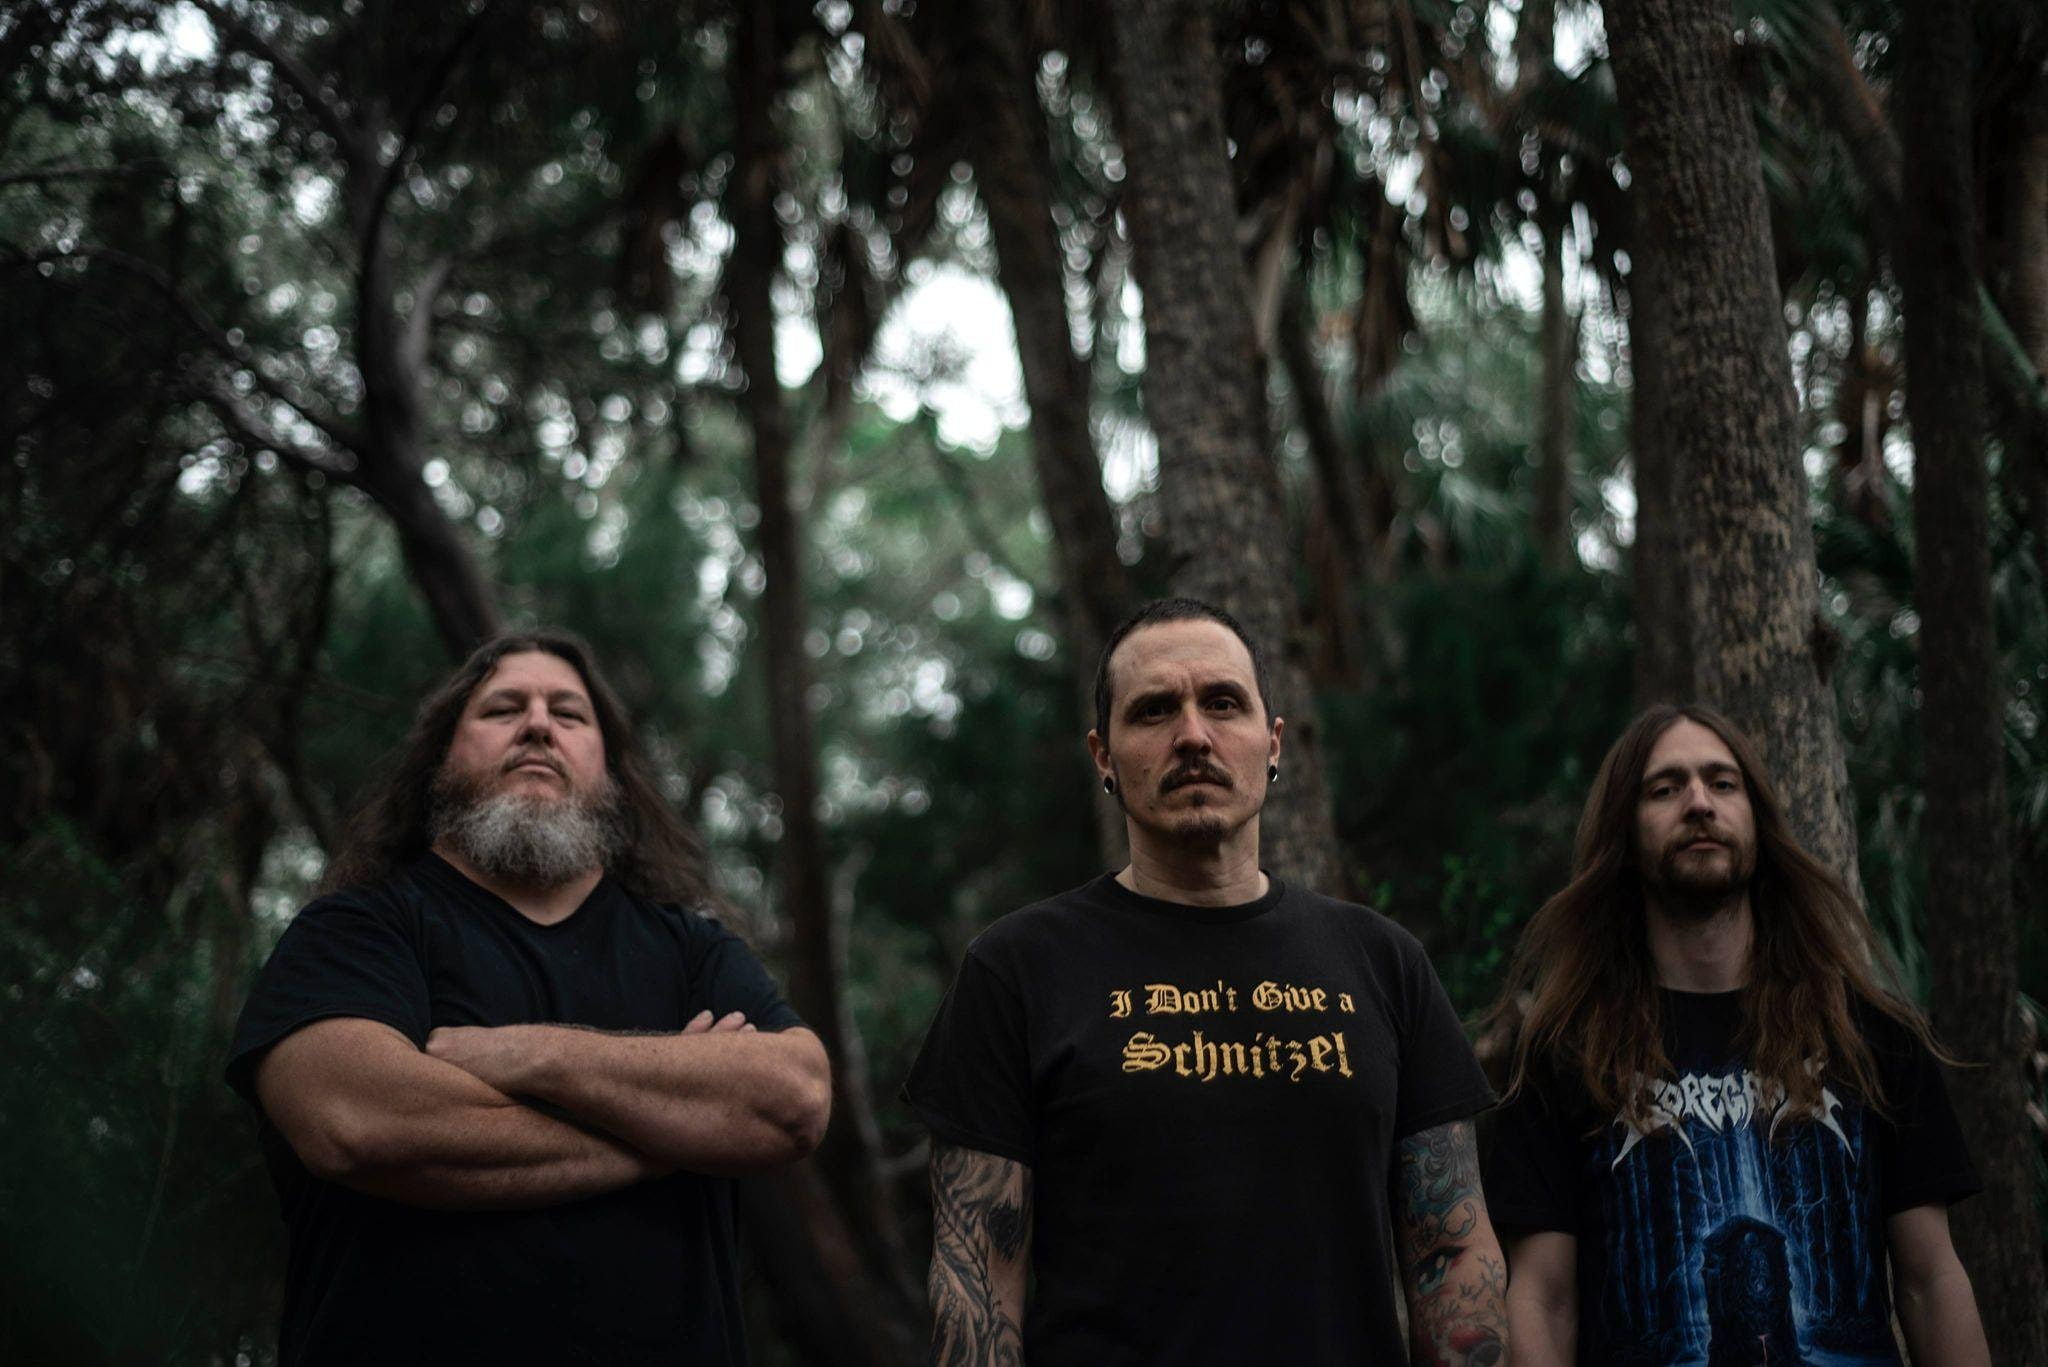 Inhuman Condition and more in Tampa at the Brass Mug